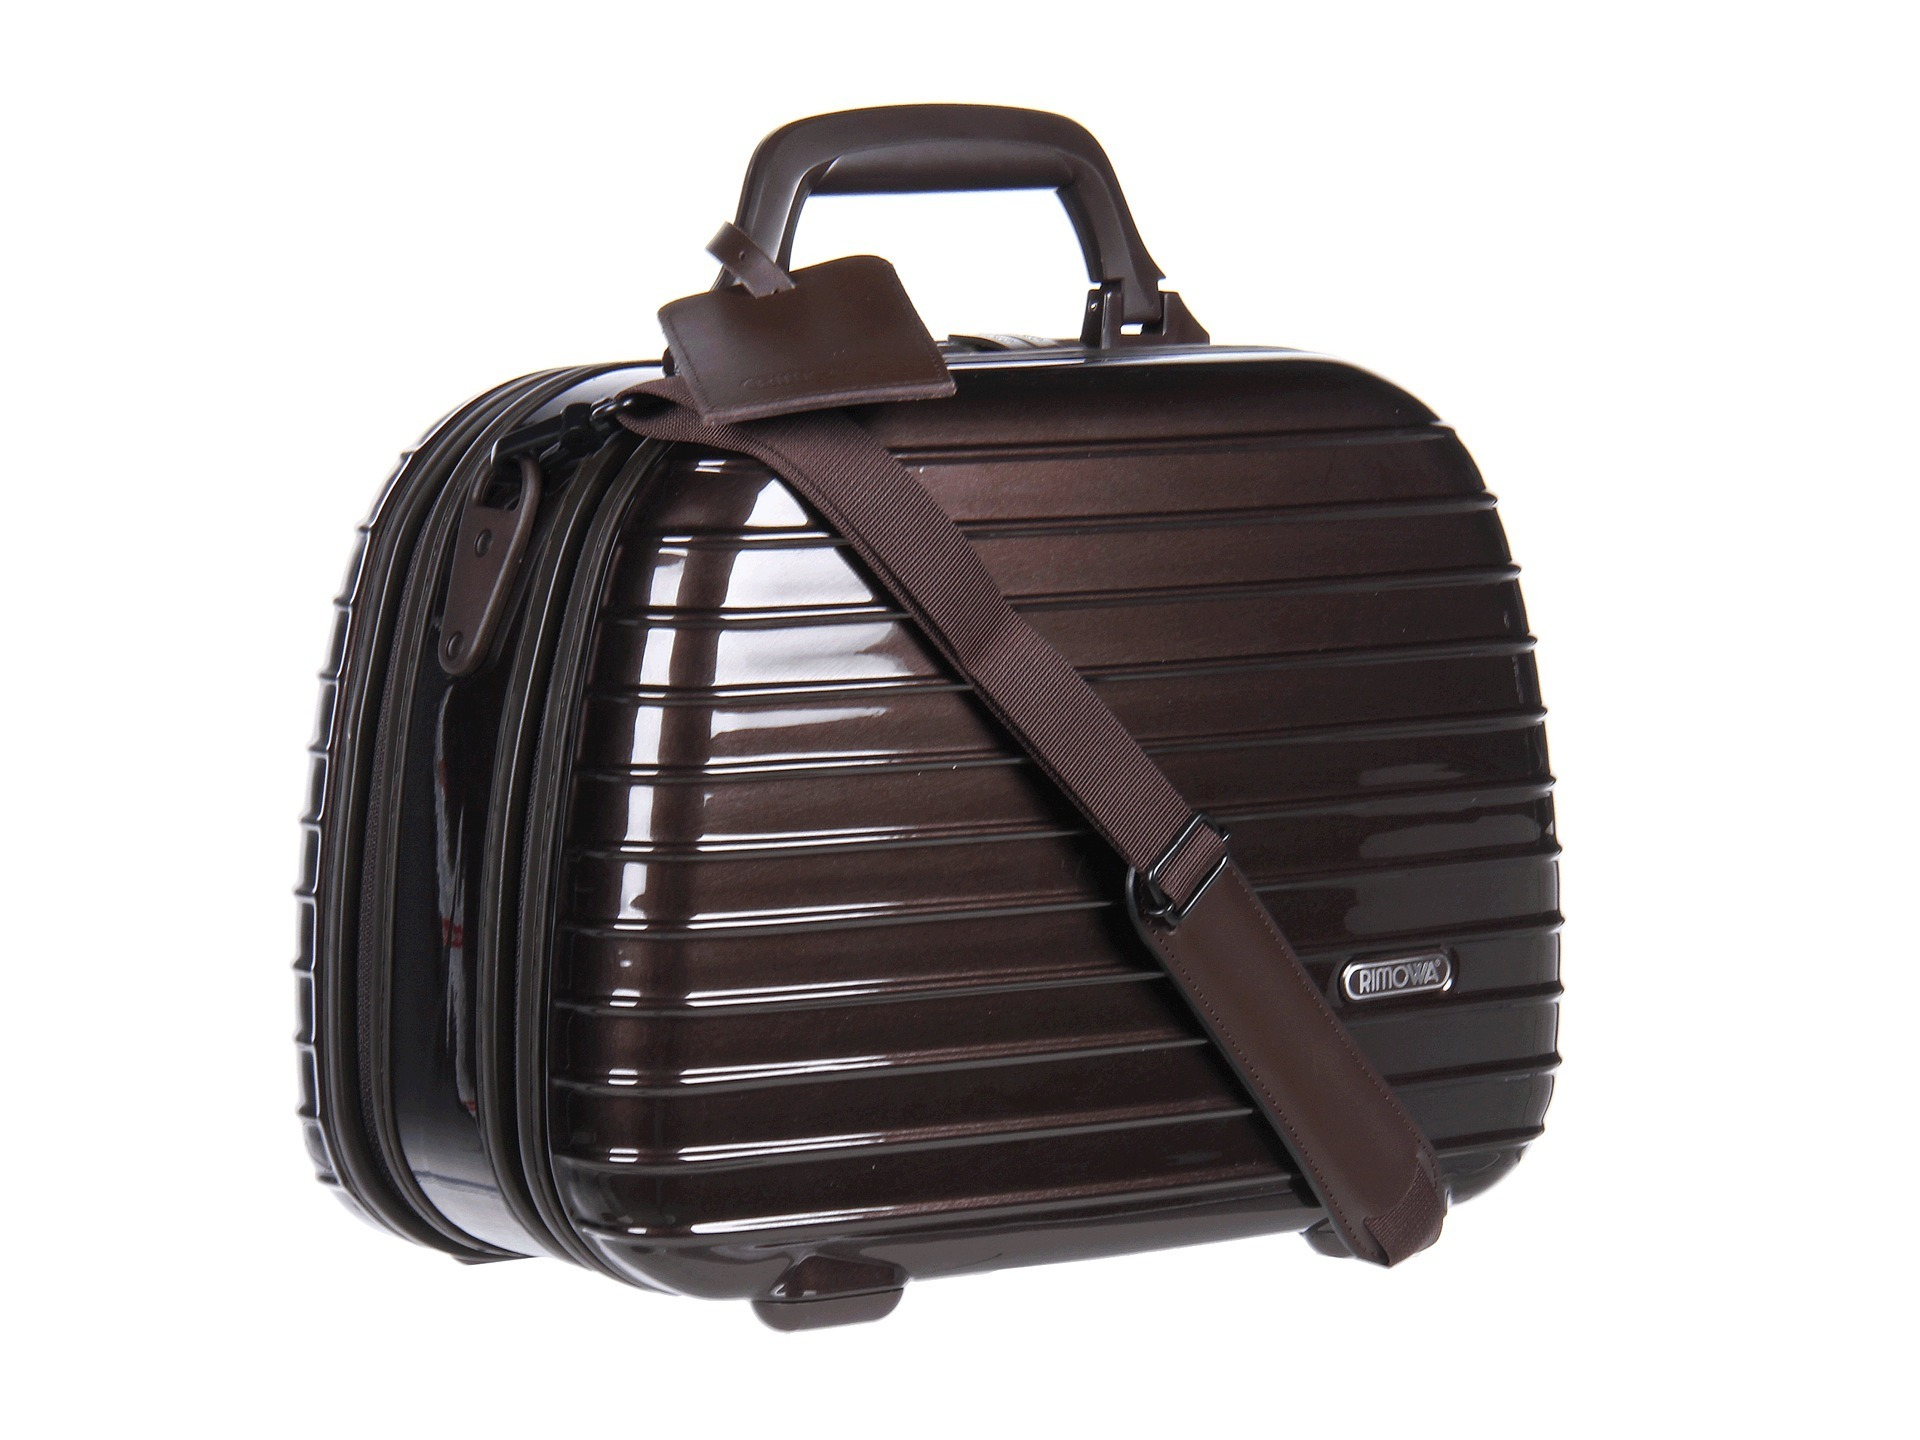 【海外限定】RIMOWA Salsa Deluxe - Beauty Case 安心の関送込